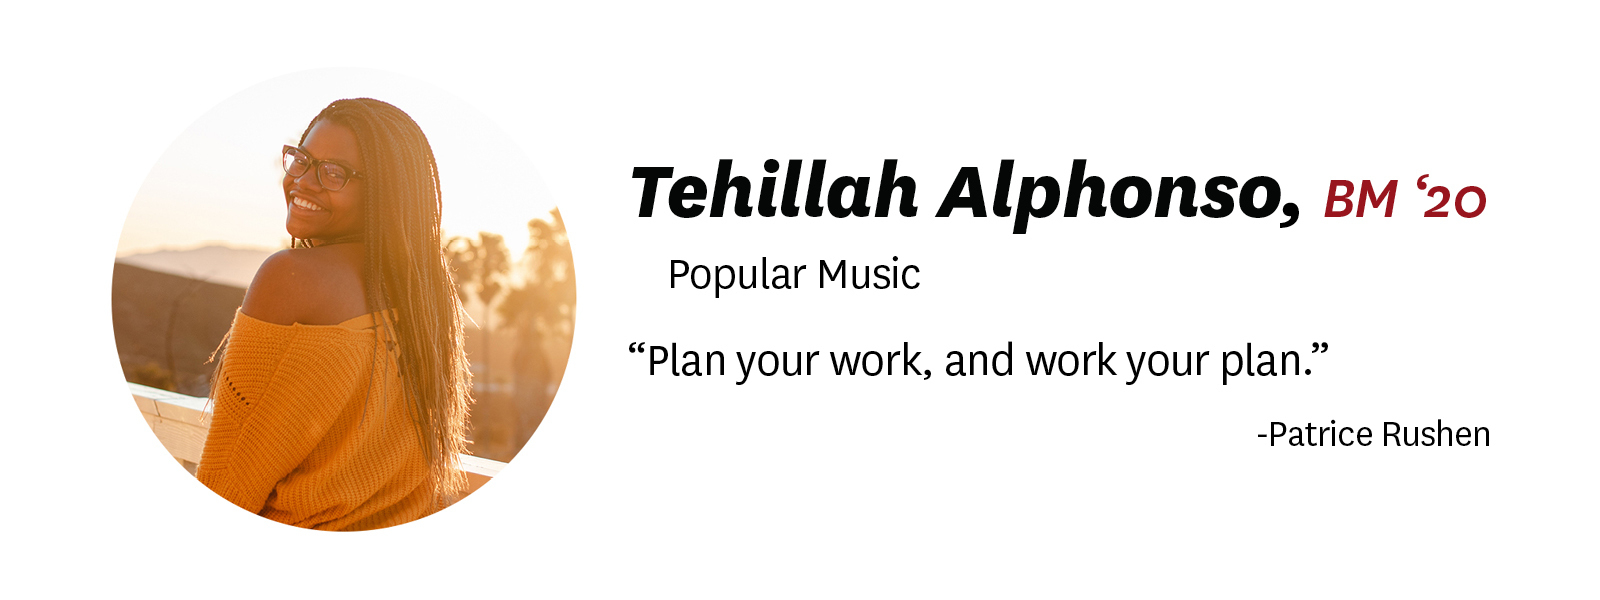 "Photo of Tehillah Alphonso with her ""senior quote."" Description of text: ""Tehillah Alphonso, BM '20, Popular Music. Quote: ""Plan your work, and work your plan."" by Patrice Rushen"